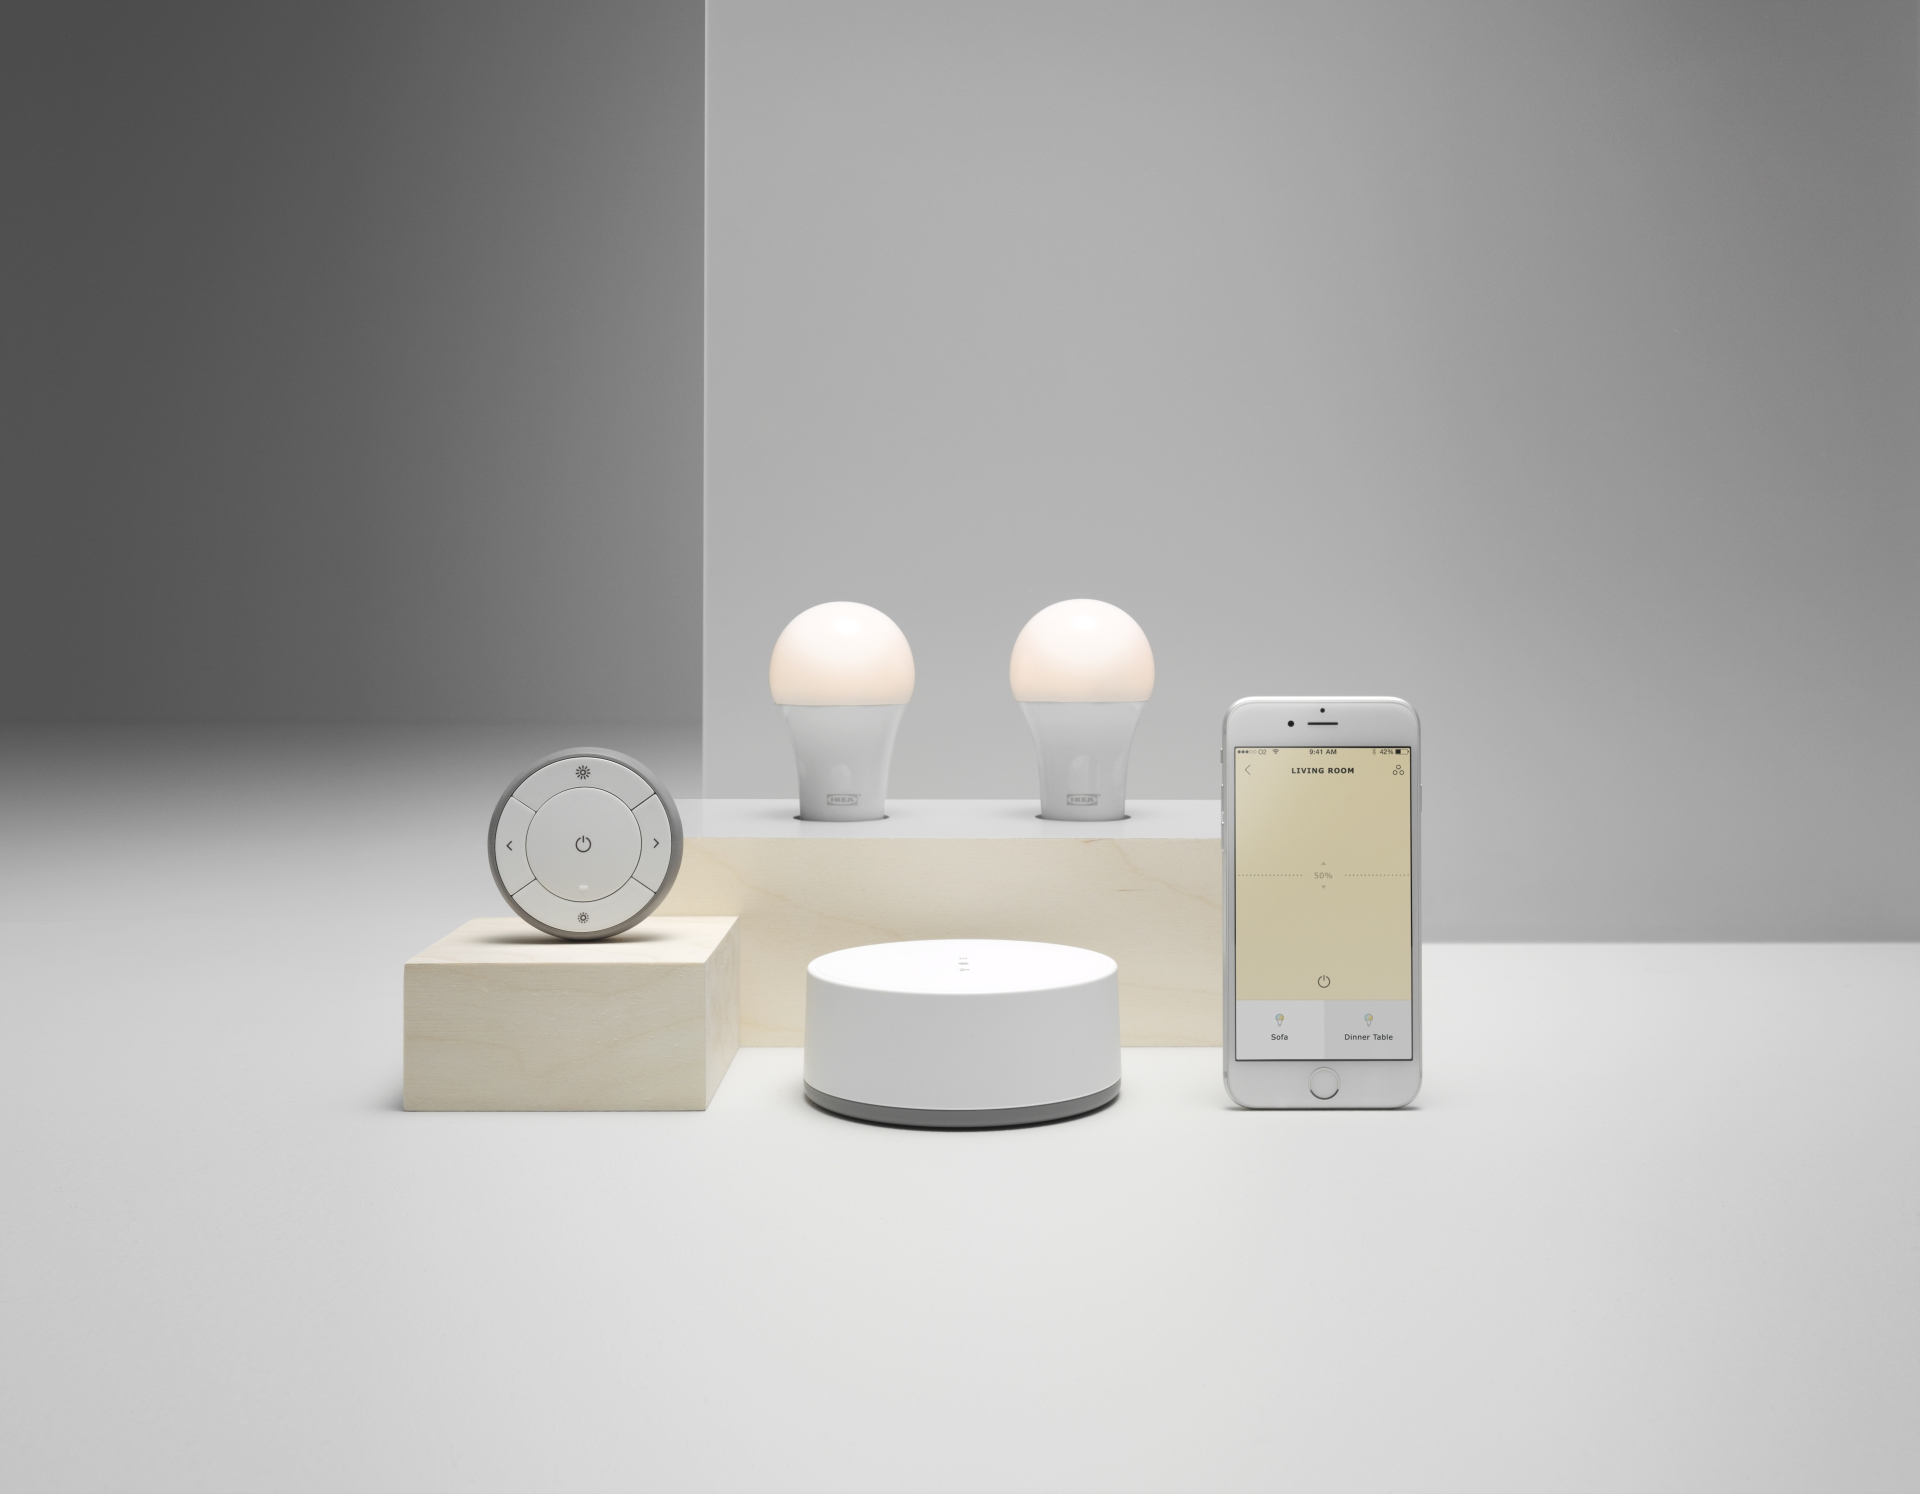 ikea_smart-lighting-2